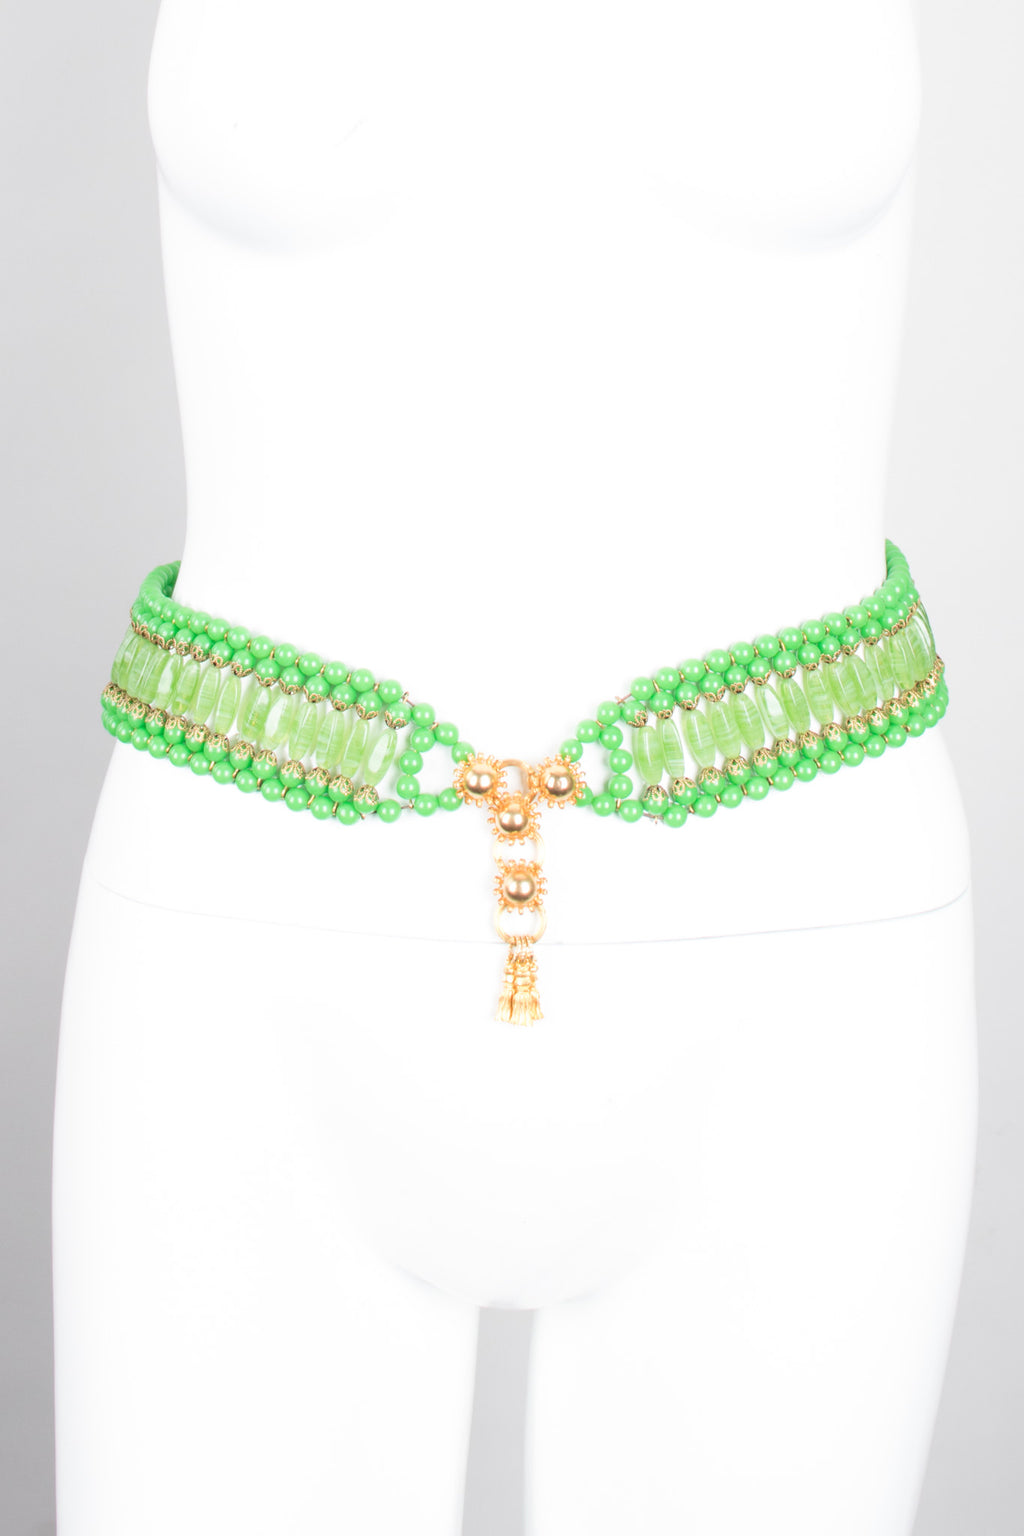 William de Lillo Vintage Green Glass Bead Belt